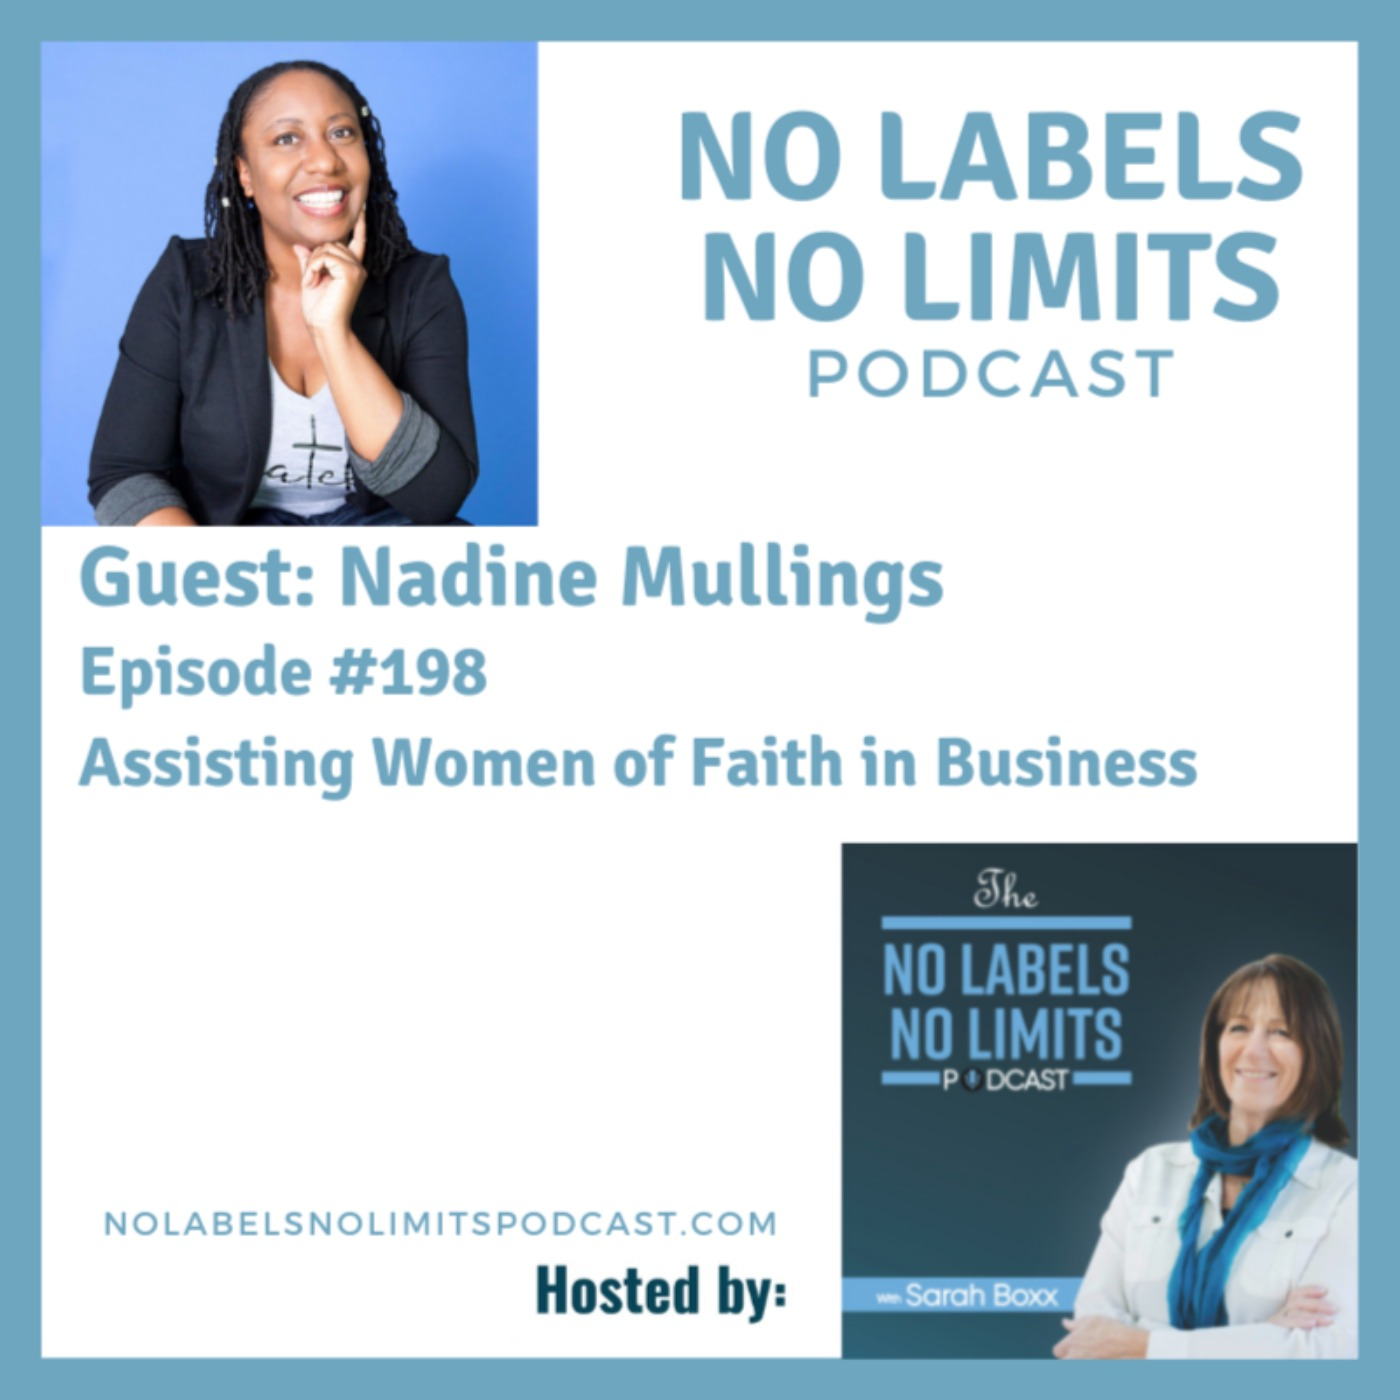 198 - Assisting Women of Faith in Business with Nadine Mullings